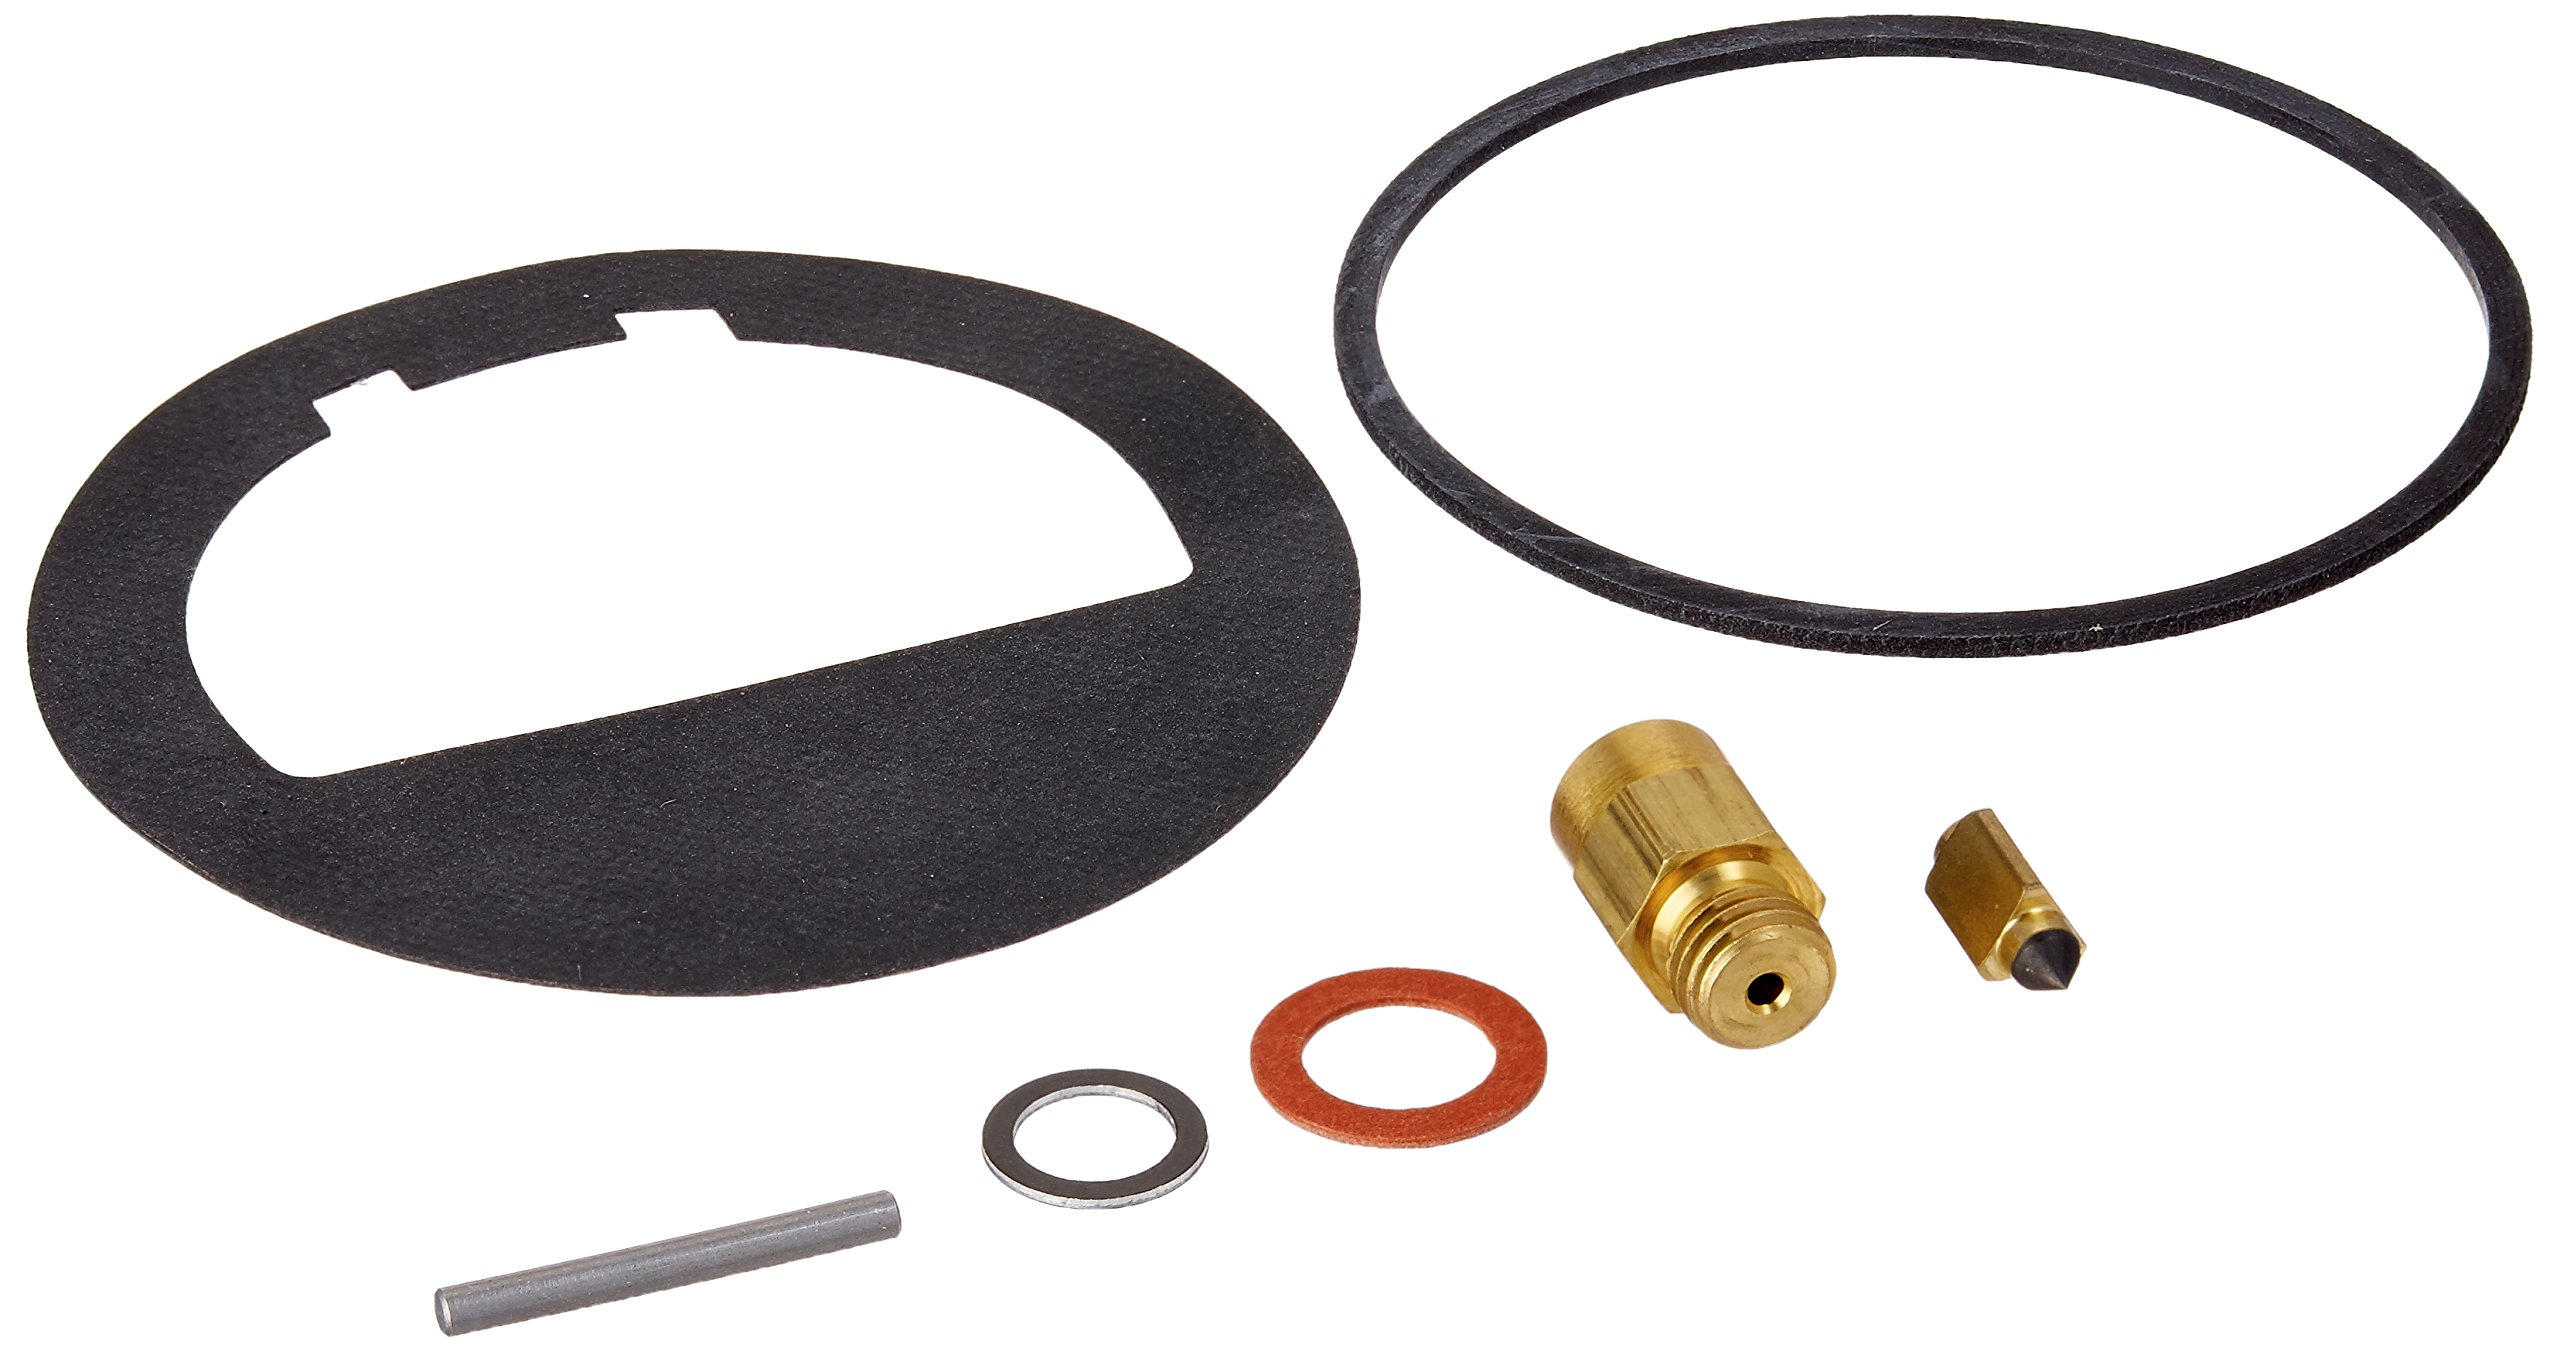 KOHLER 25 757 02-S Engine Carburetor Kit K301 - K582, KT Series And M12 - M20 by Kohler